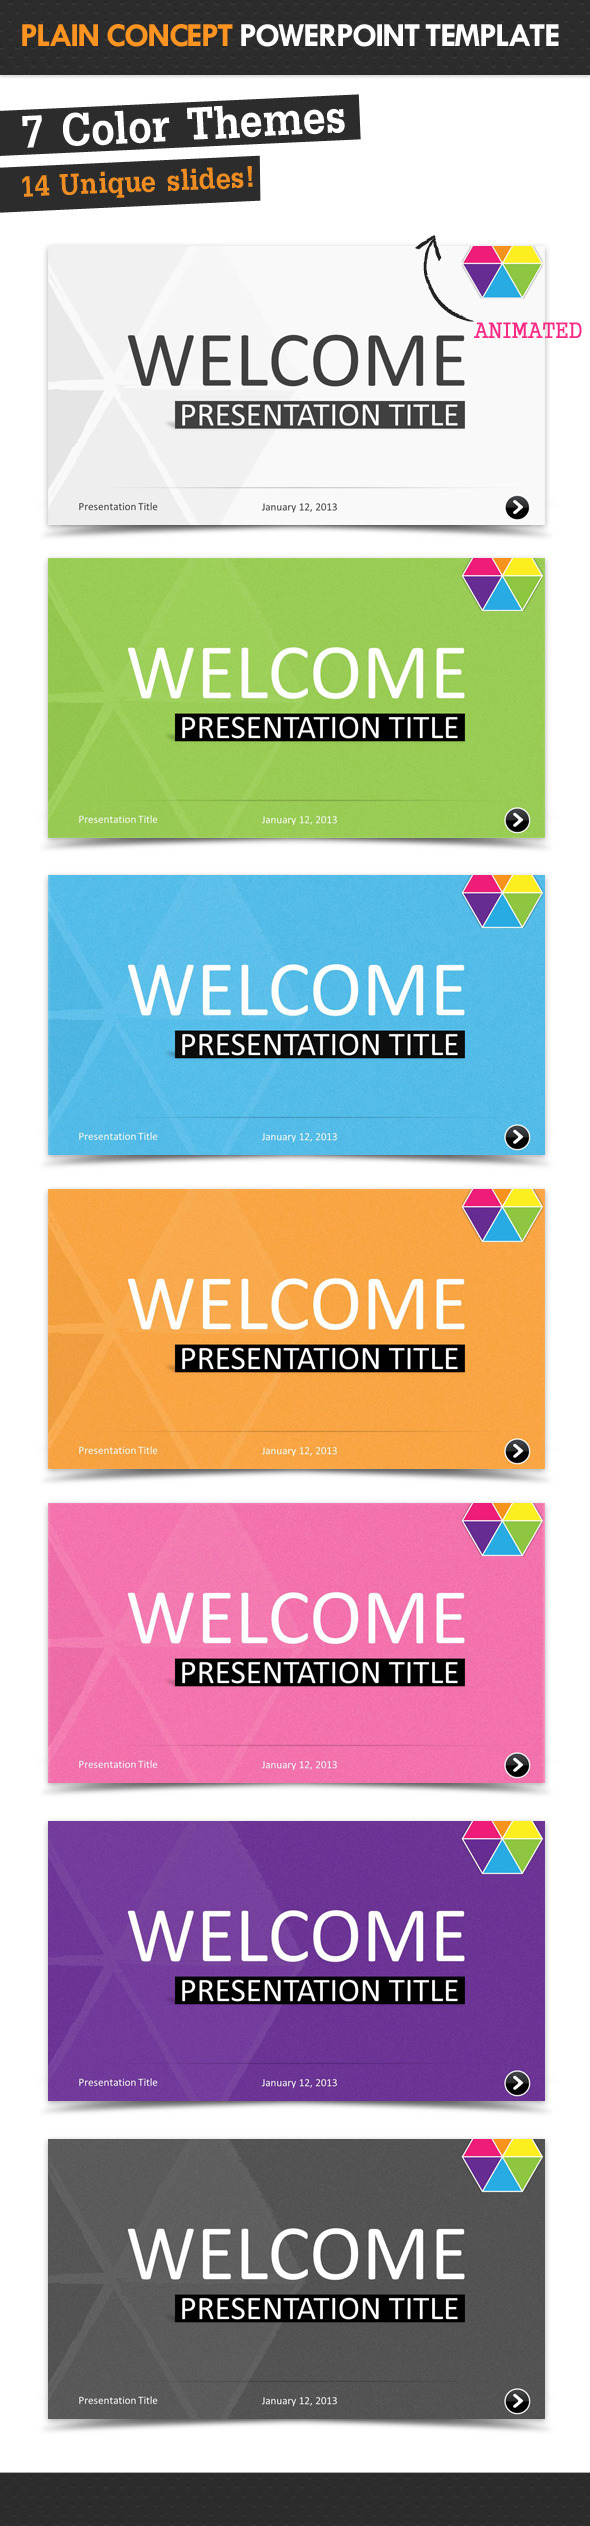 Plain Concept Powerpoint Template - PowerPoint Templates Presentation Templates